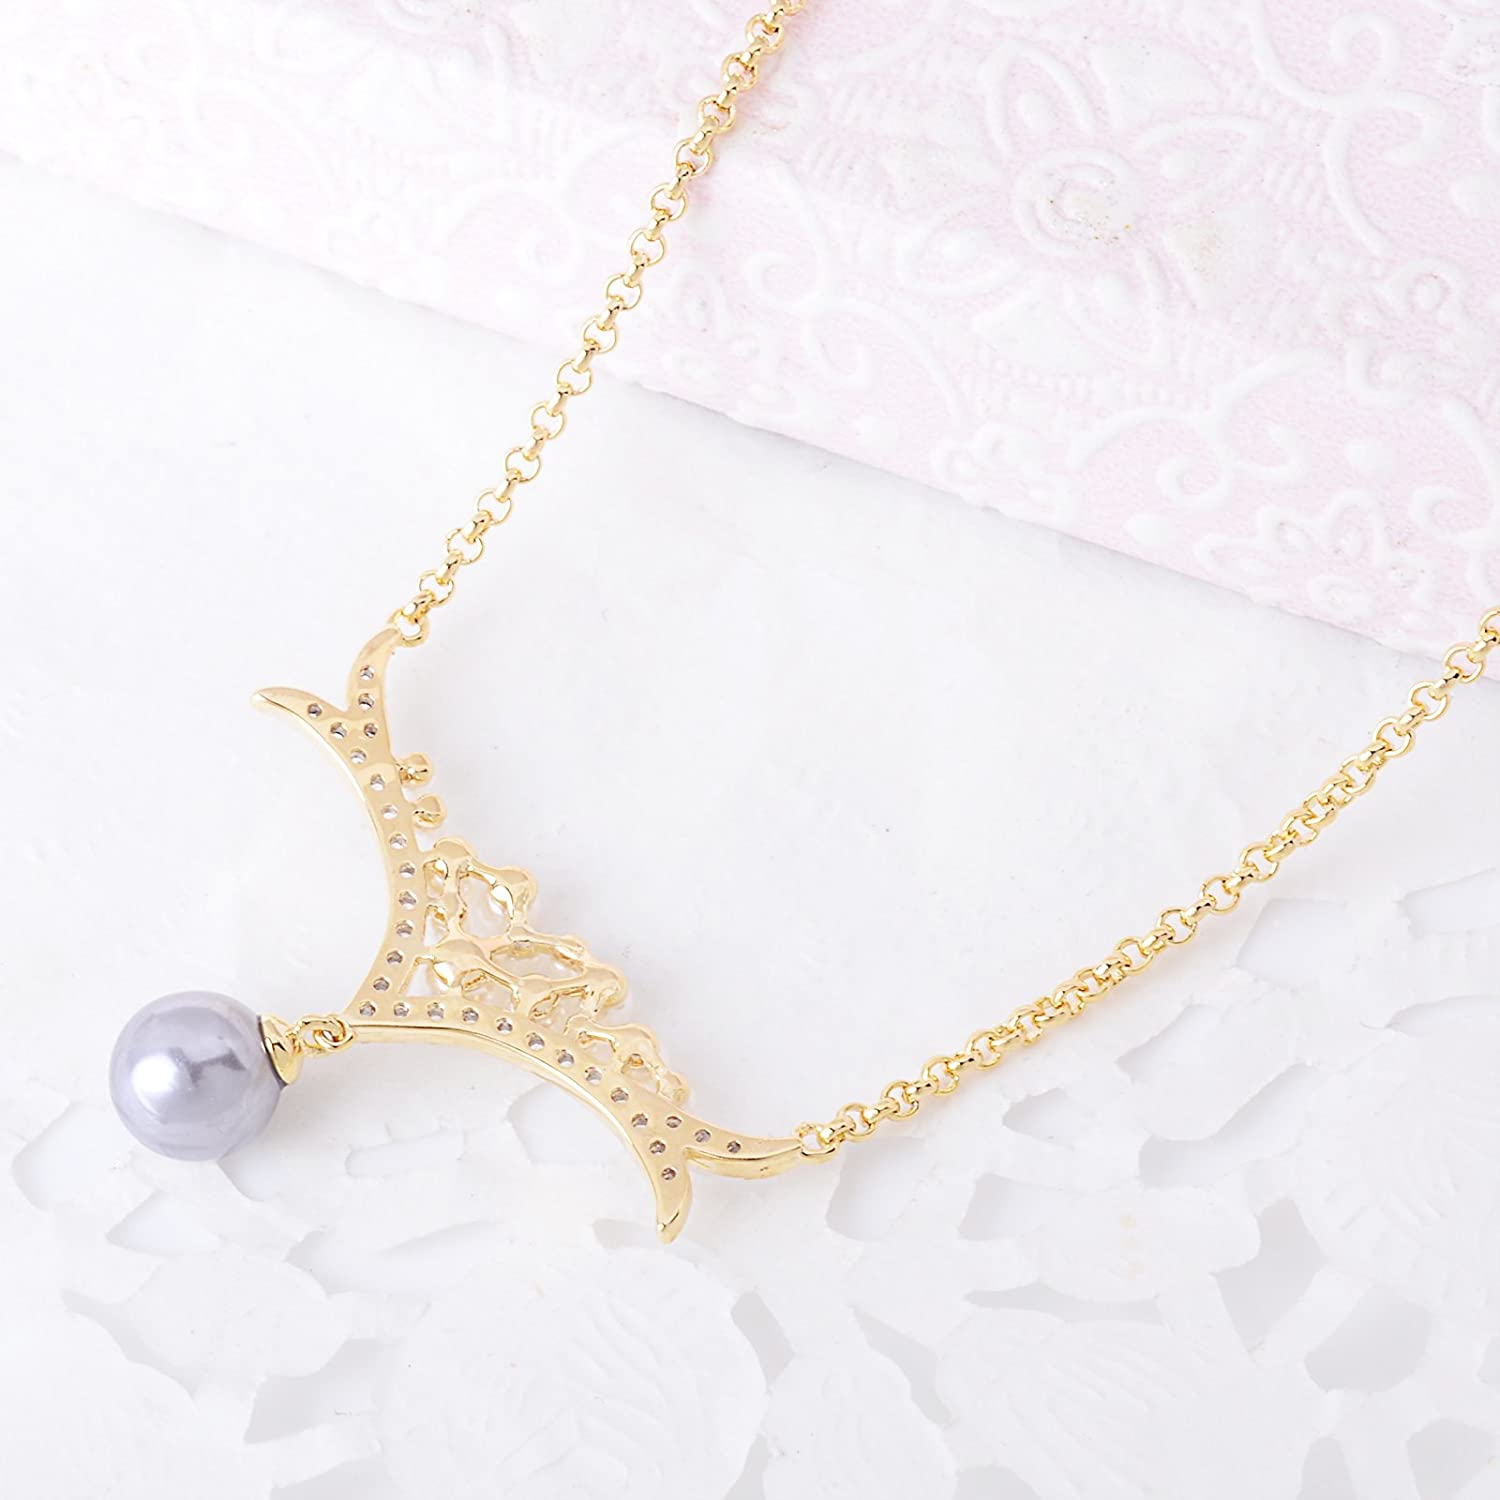 OBONNIE Gold Tone Crystal Deer Horn Antler Pendant Shell Pearls Choker Necklace Jewelry for Women